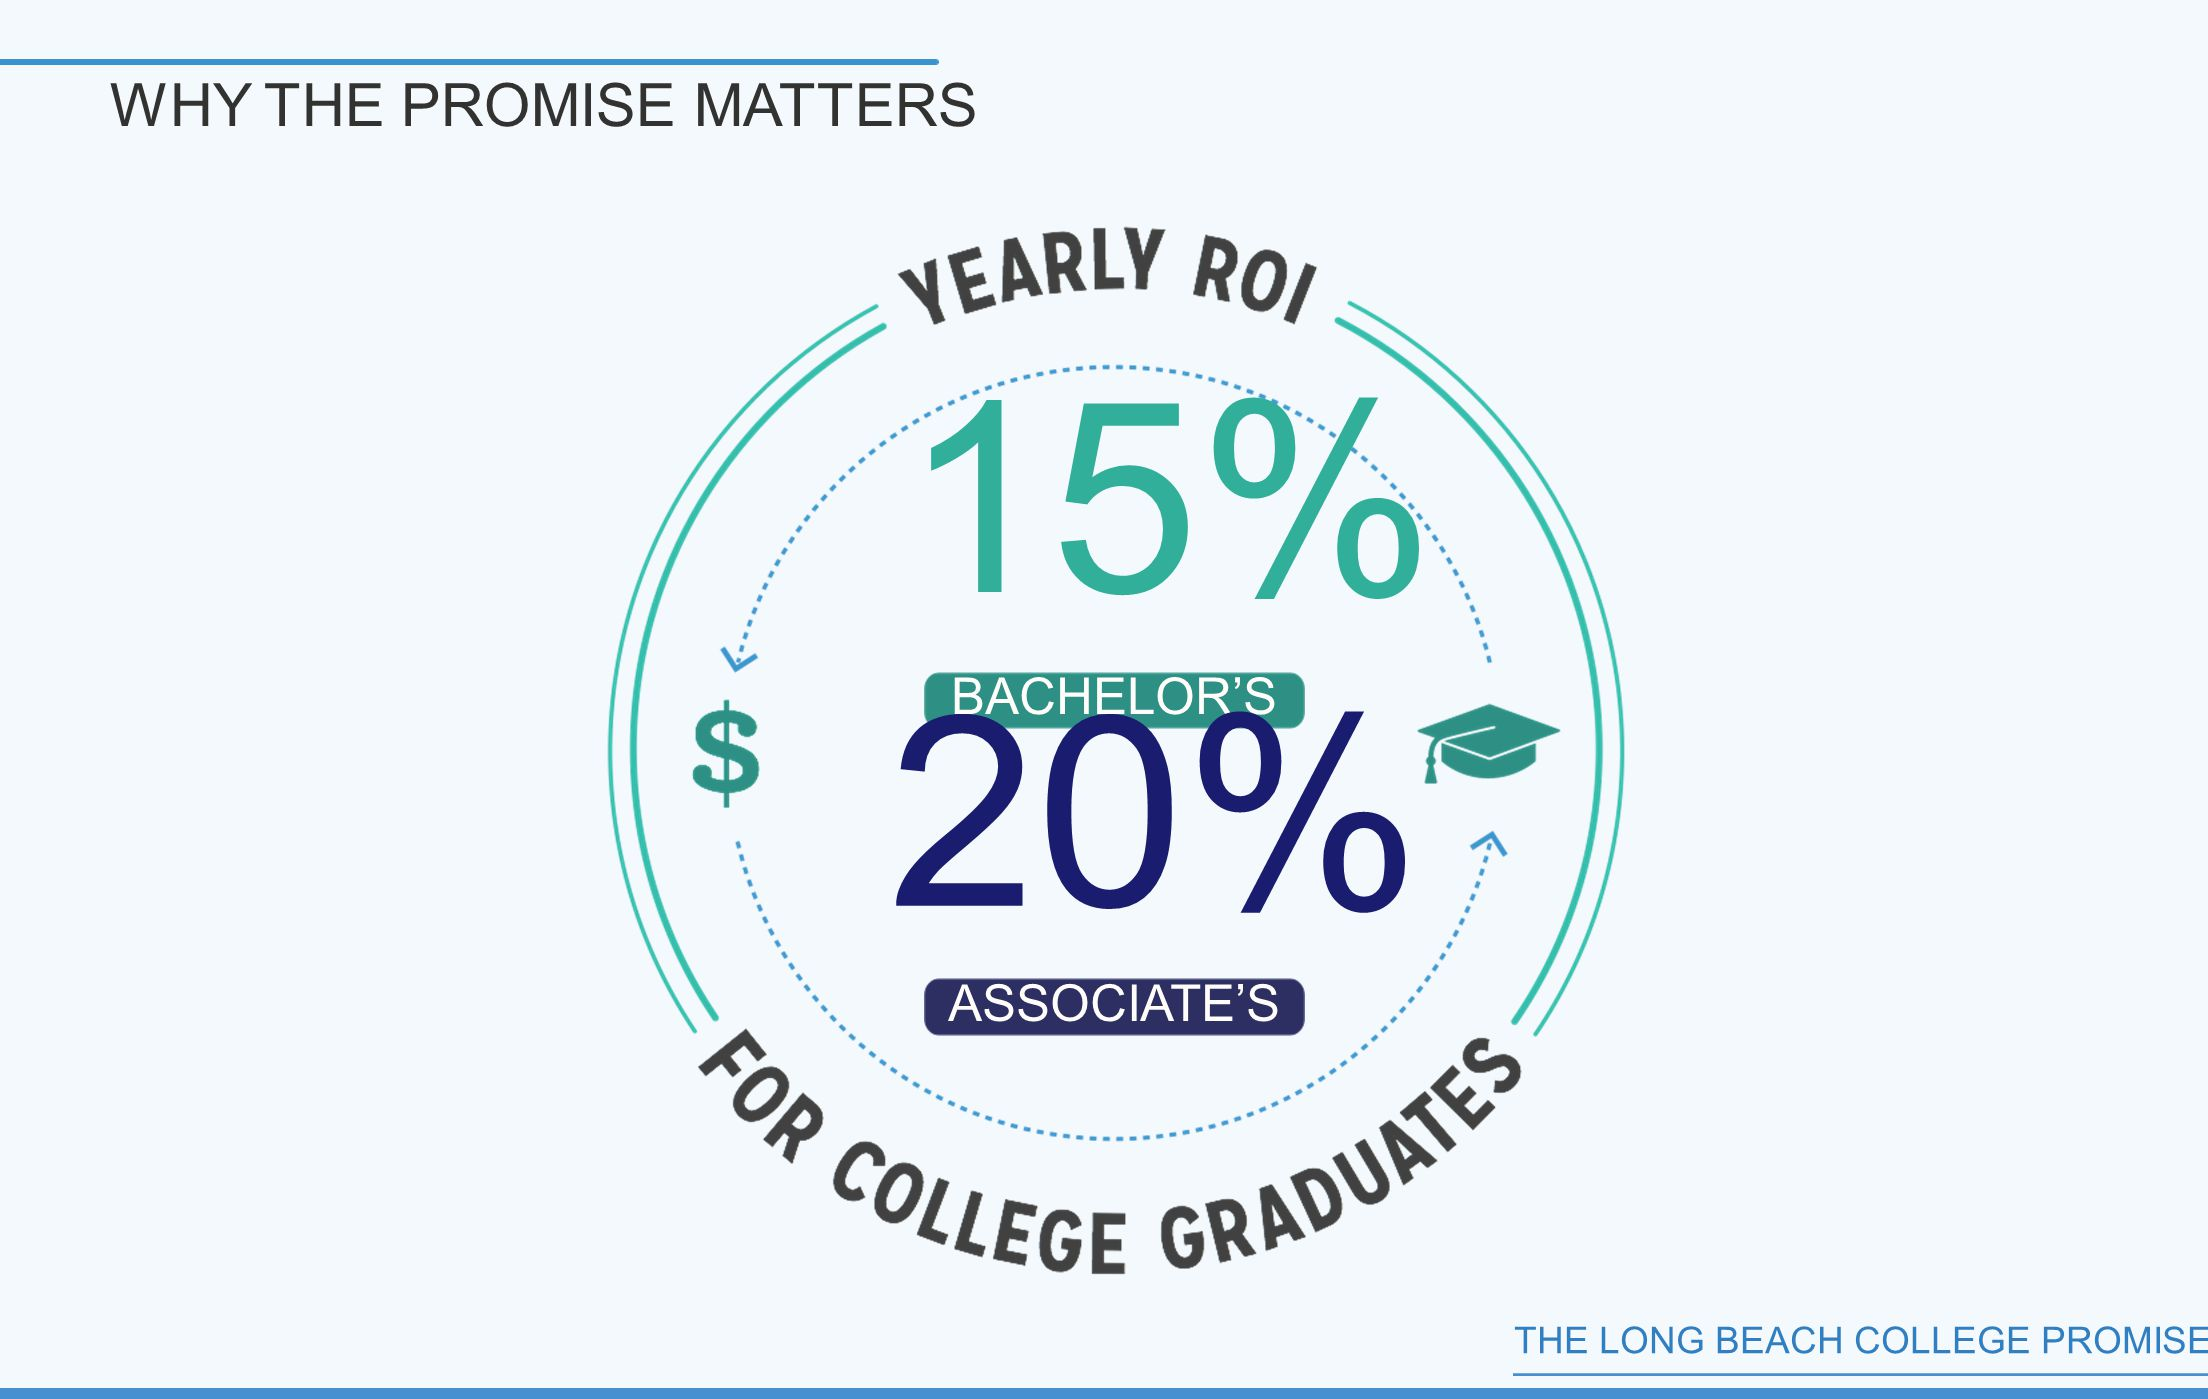 THE LONG BEACH COLLEGE PROMISE BACHELOR'S ASSOCIATE'S 15% 20% WHY THE PROMISE MATTERS